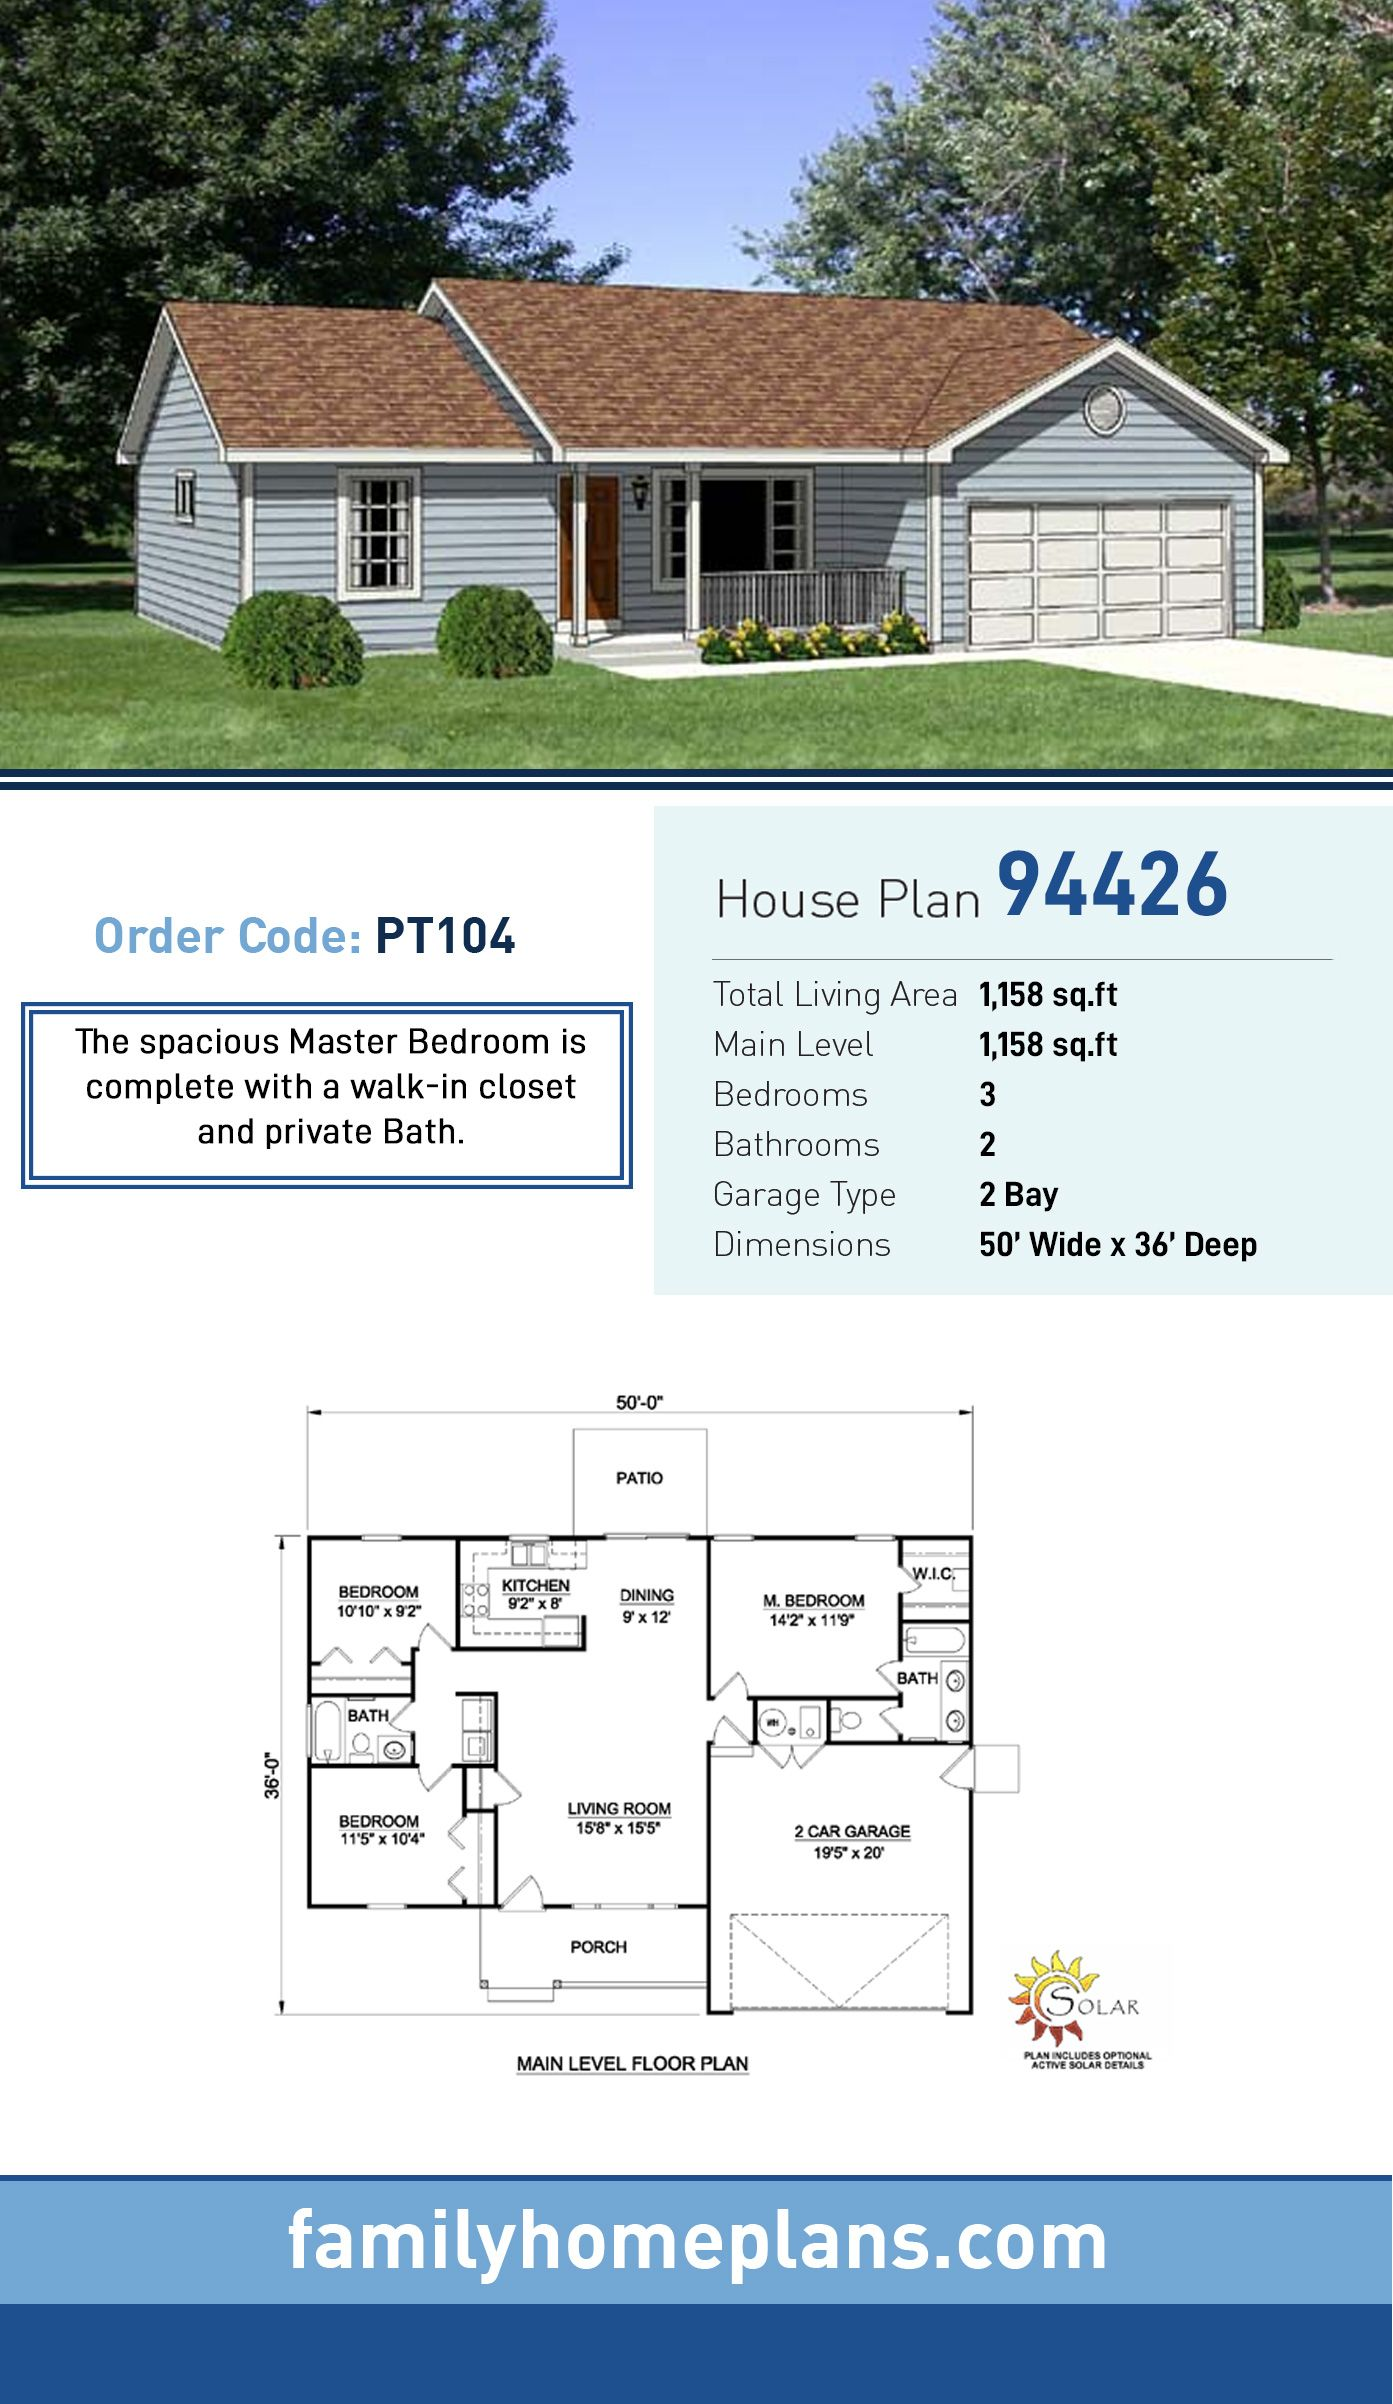 Ranch Style House Plan 94426 With 3 Bed 2 Bath 2 Car Garage Ranch House Plans Ranch Style House Plans House Plans